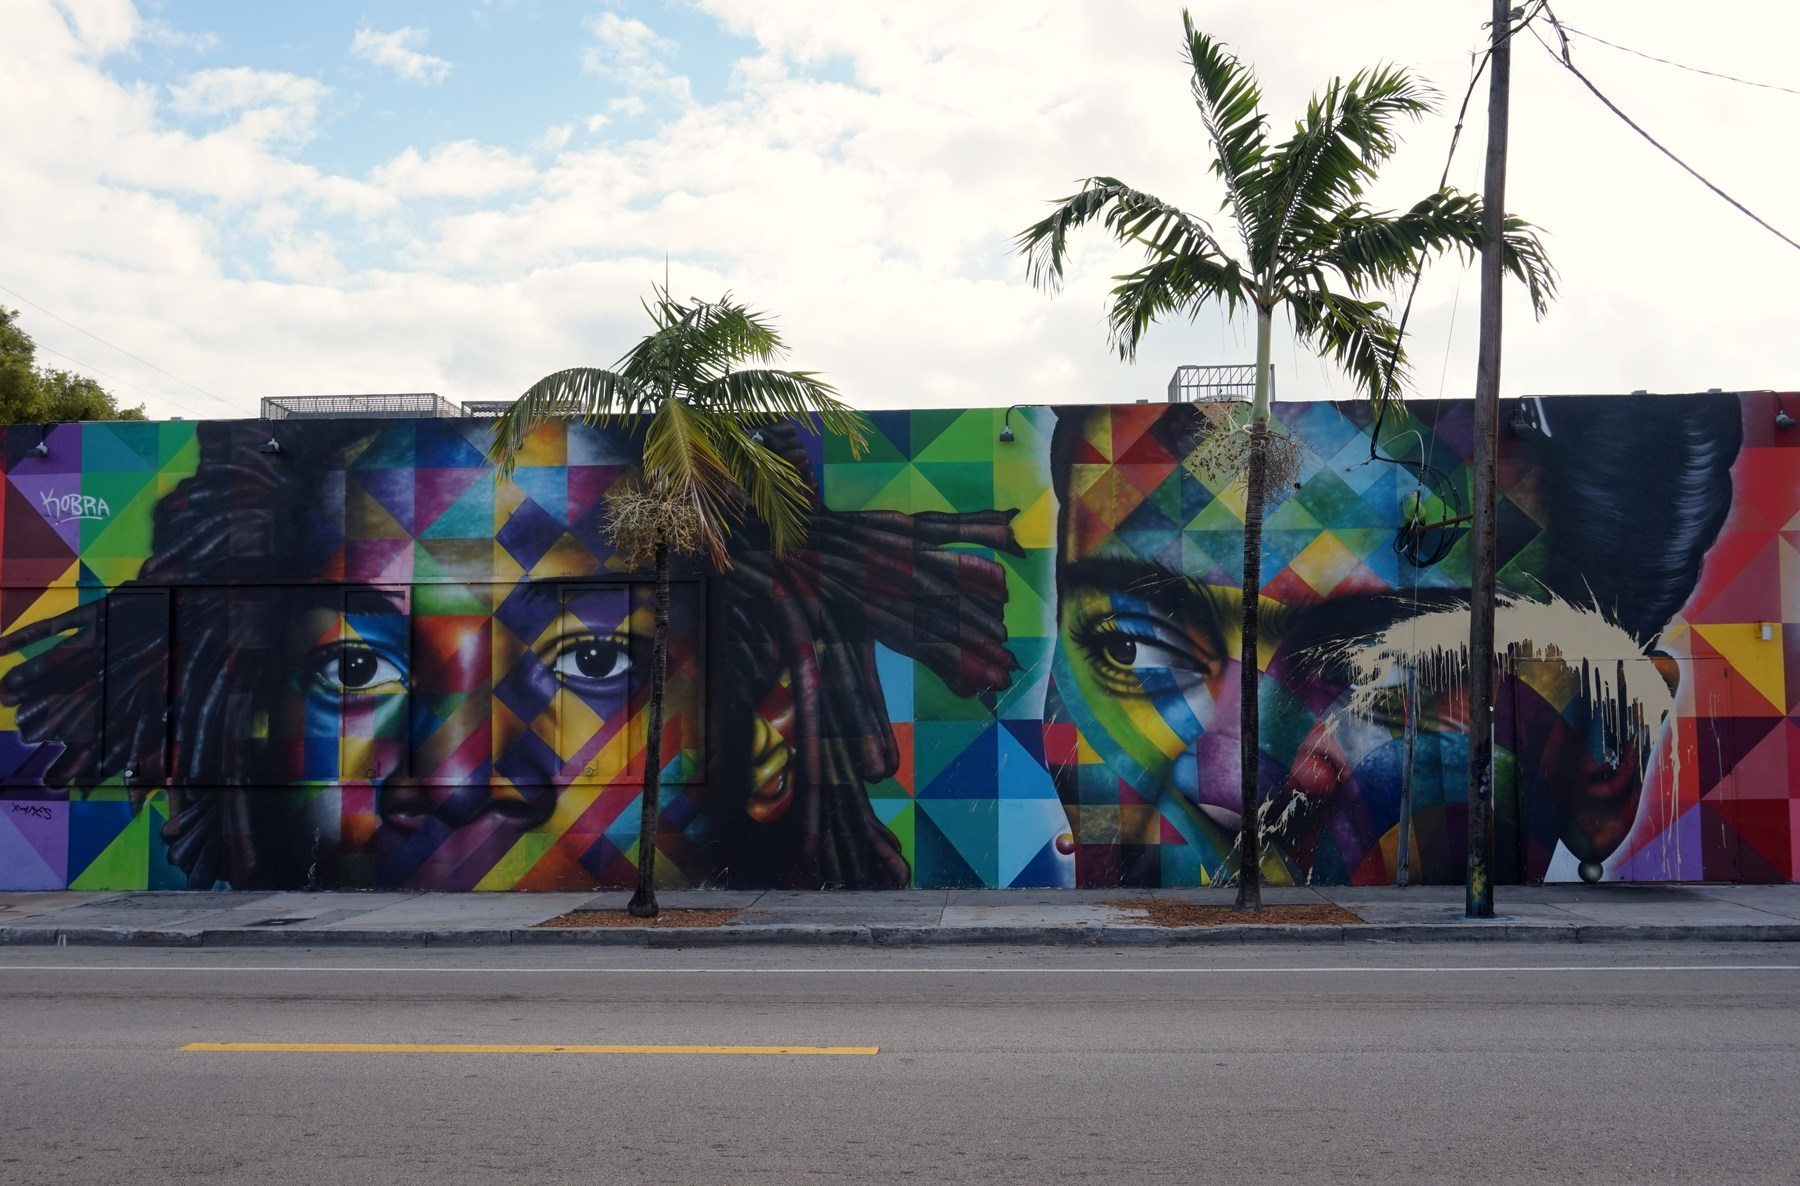 photo essay street art in wynwood buddy the traveling monkey do you like street art where have you seen some impressive street art comment below